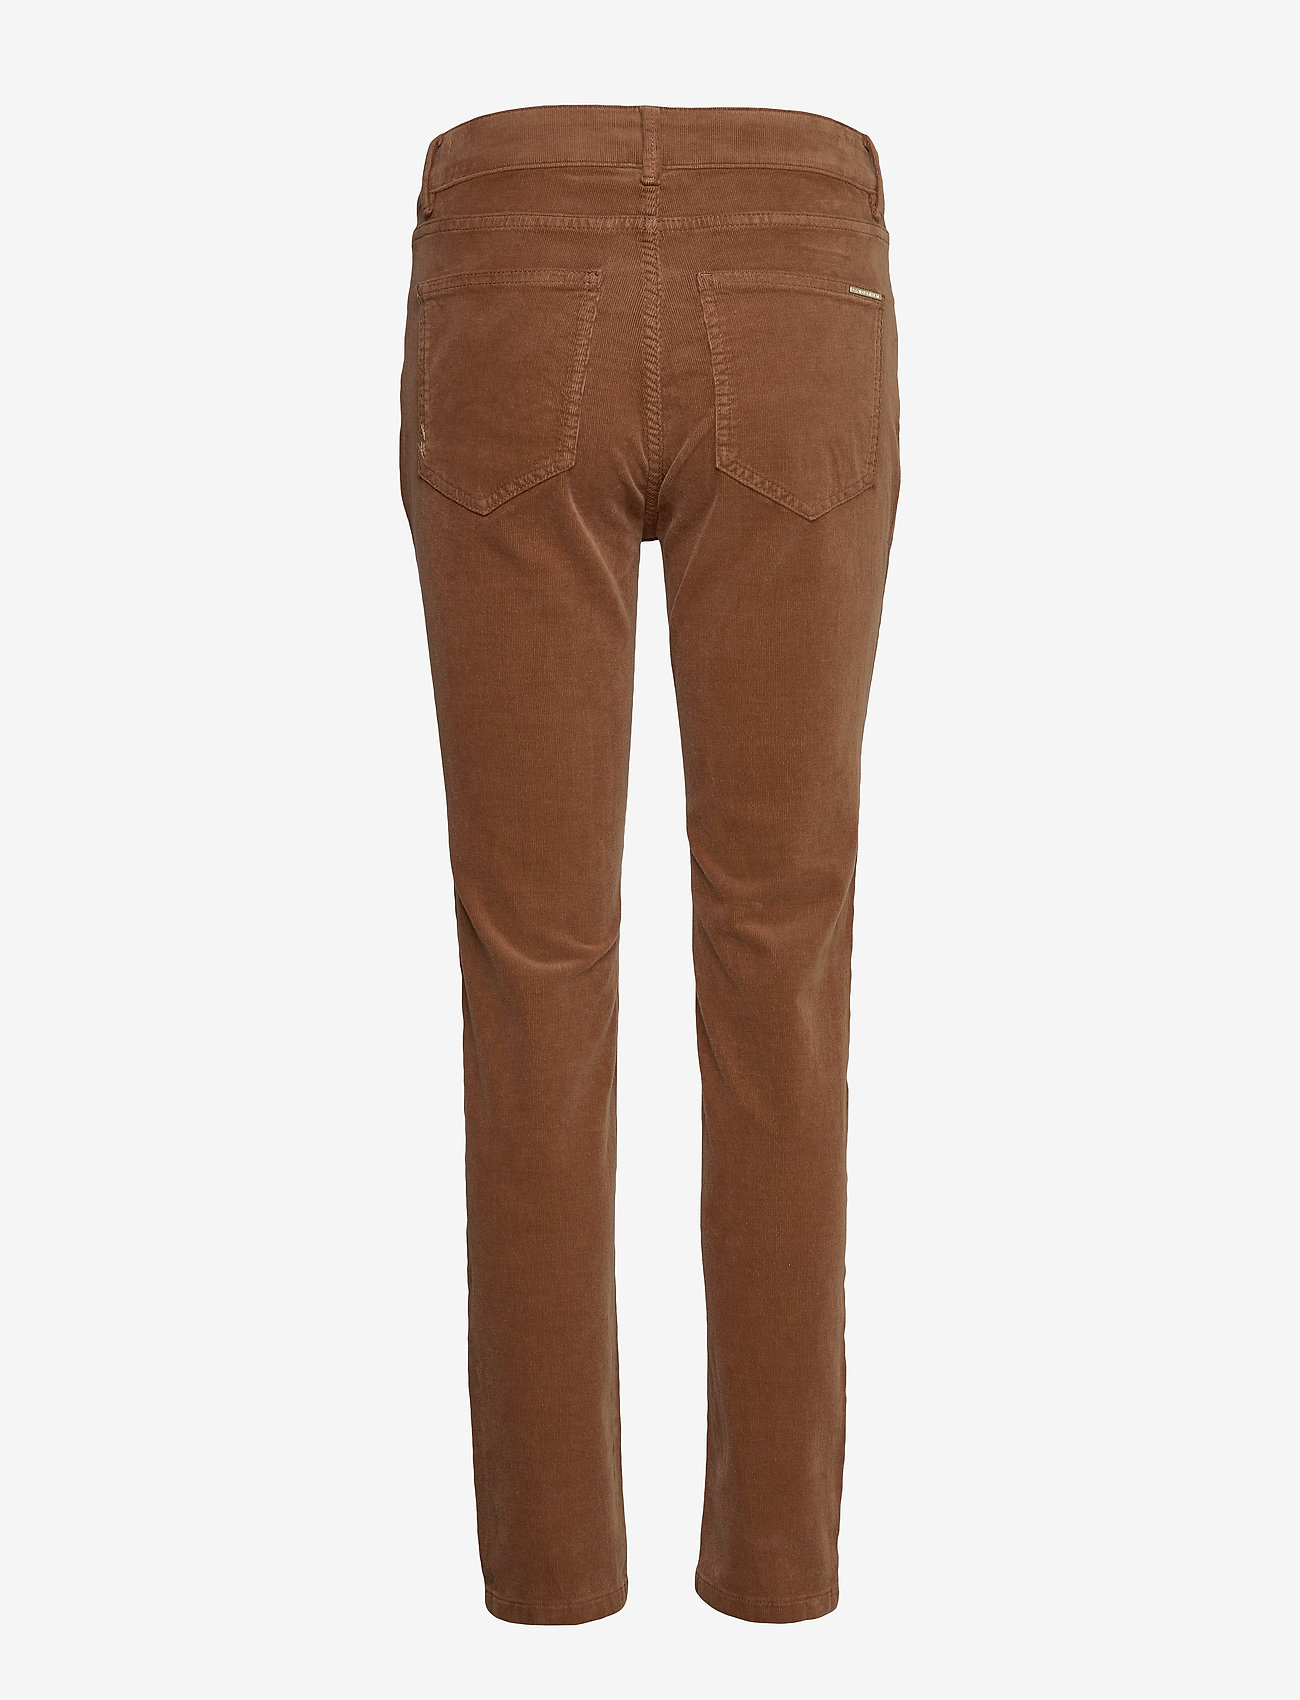 Day Birger et Mikkelsen - Day Teach - trousers with skinny legs - figue